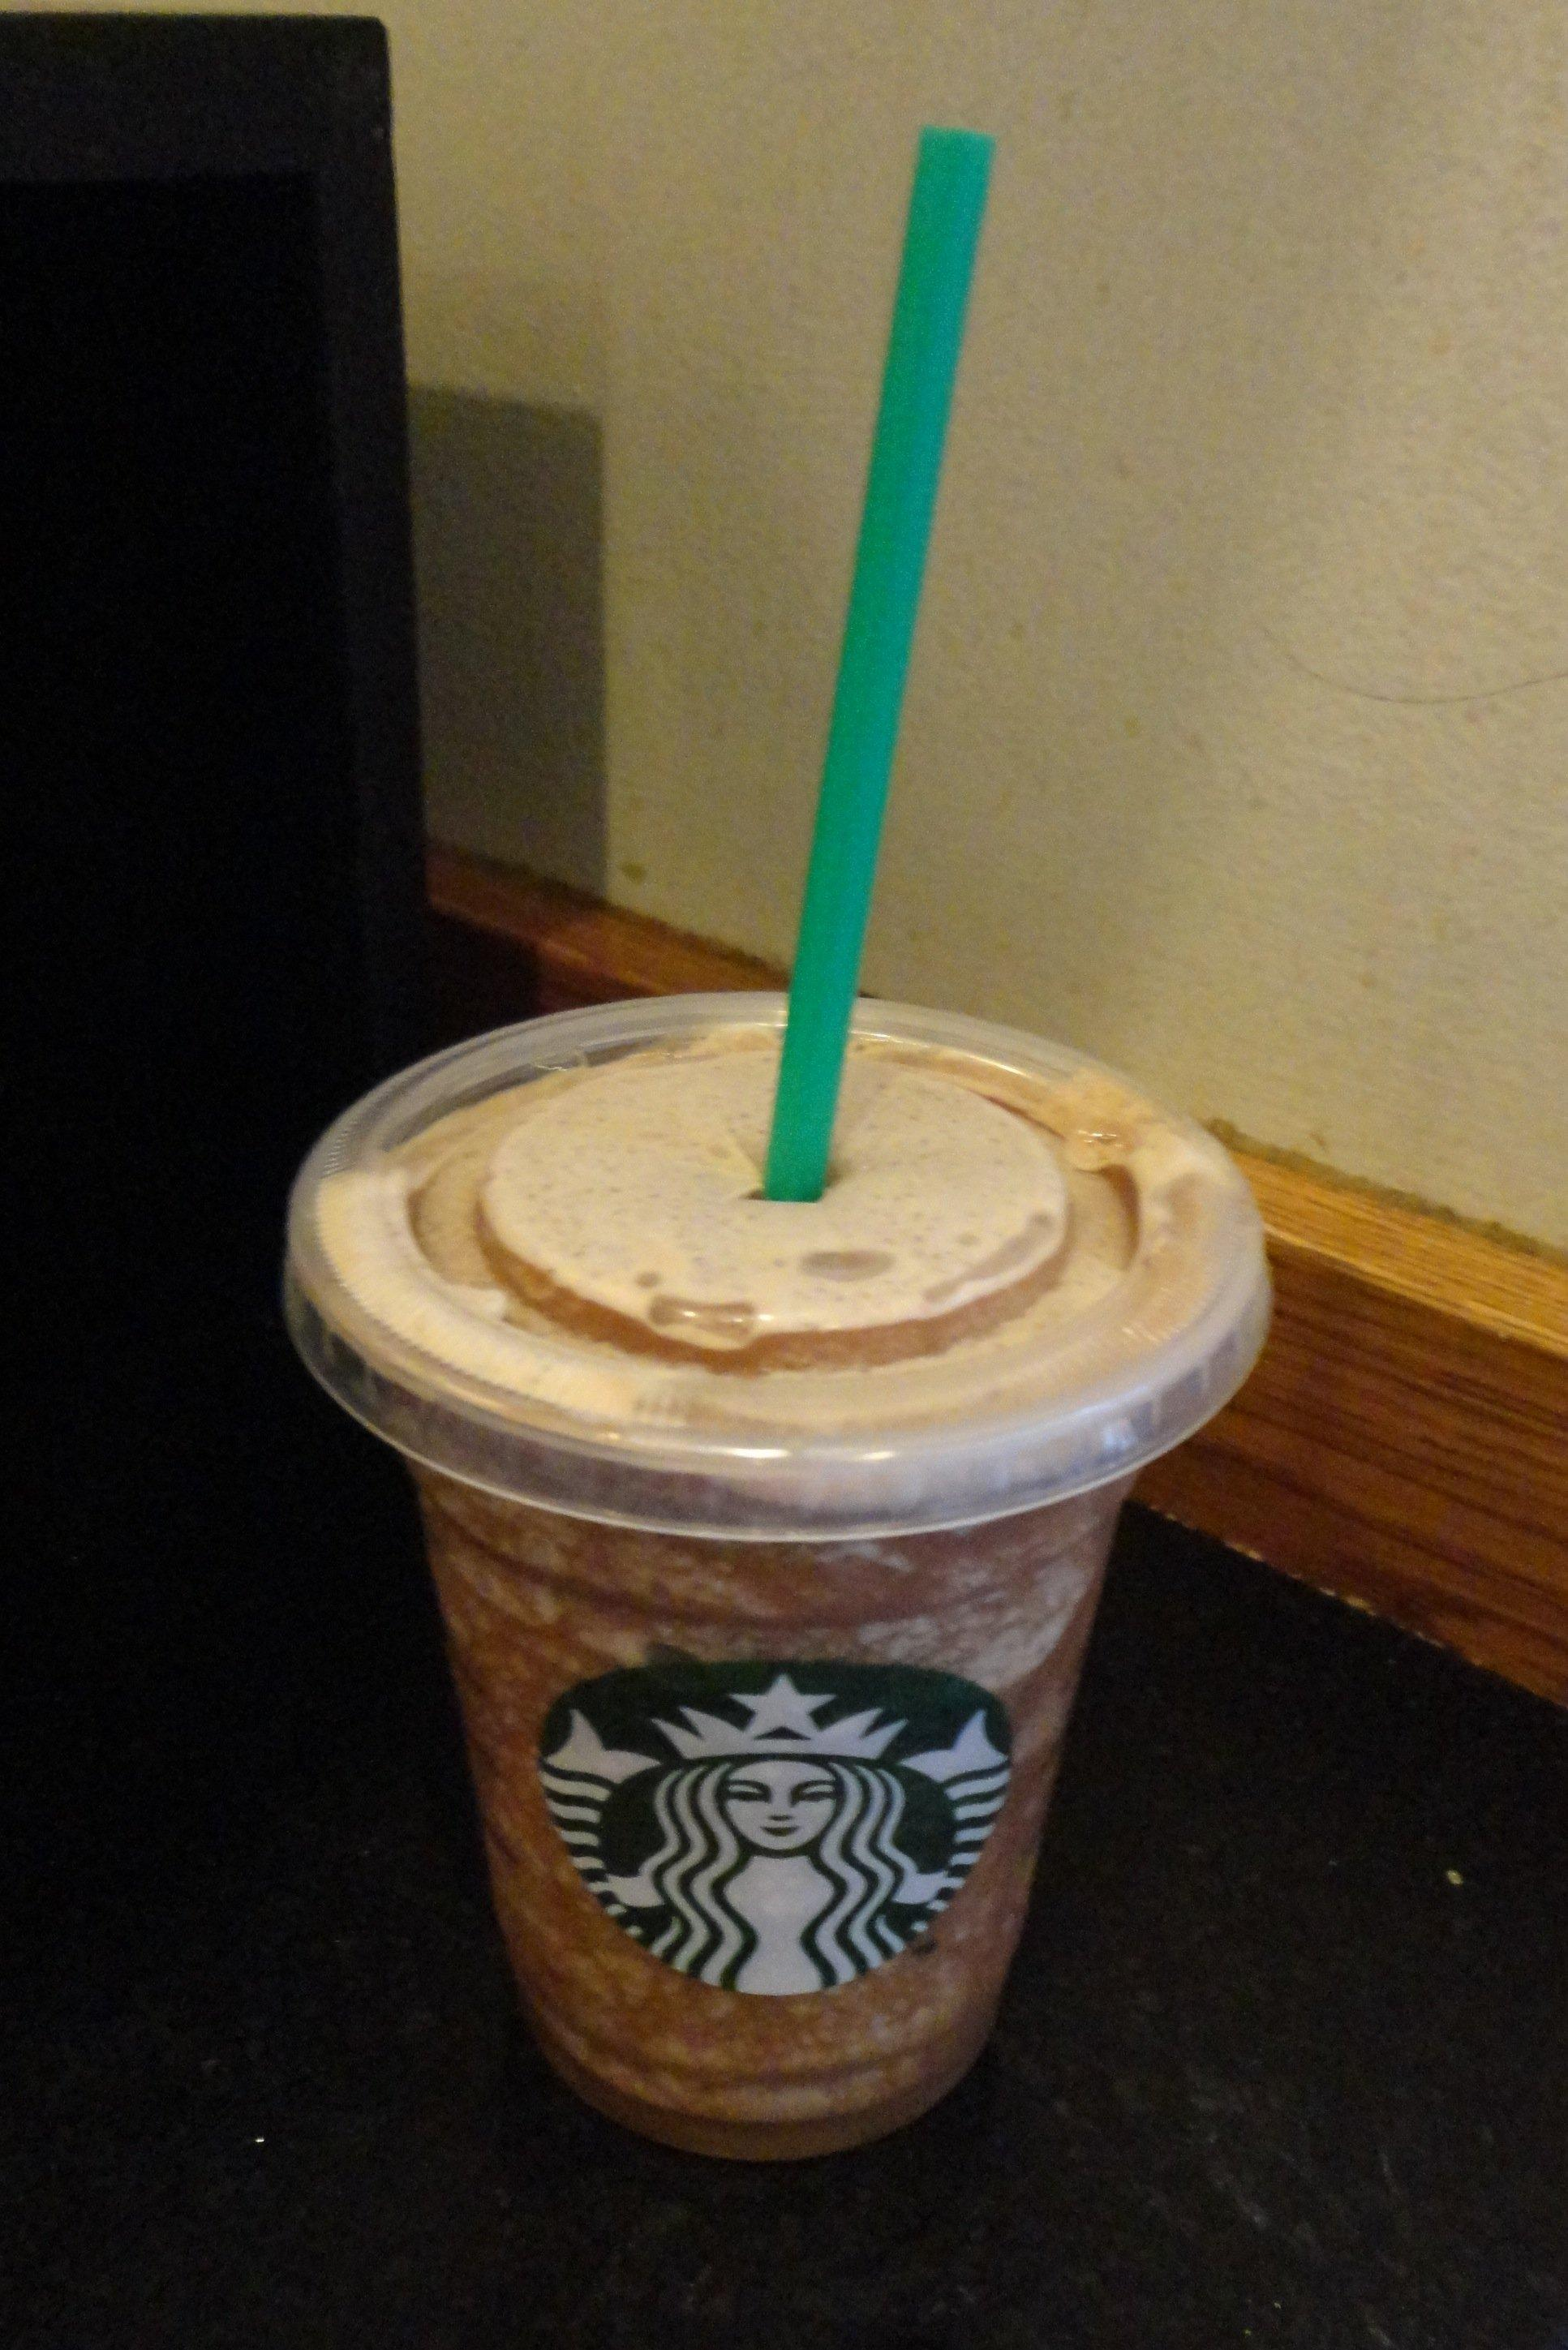 Healthy Starbucks Drinks: The Complete List (2018 Update)